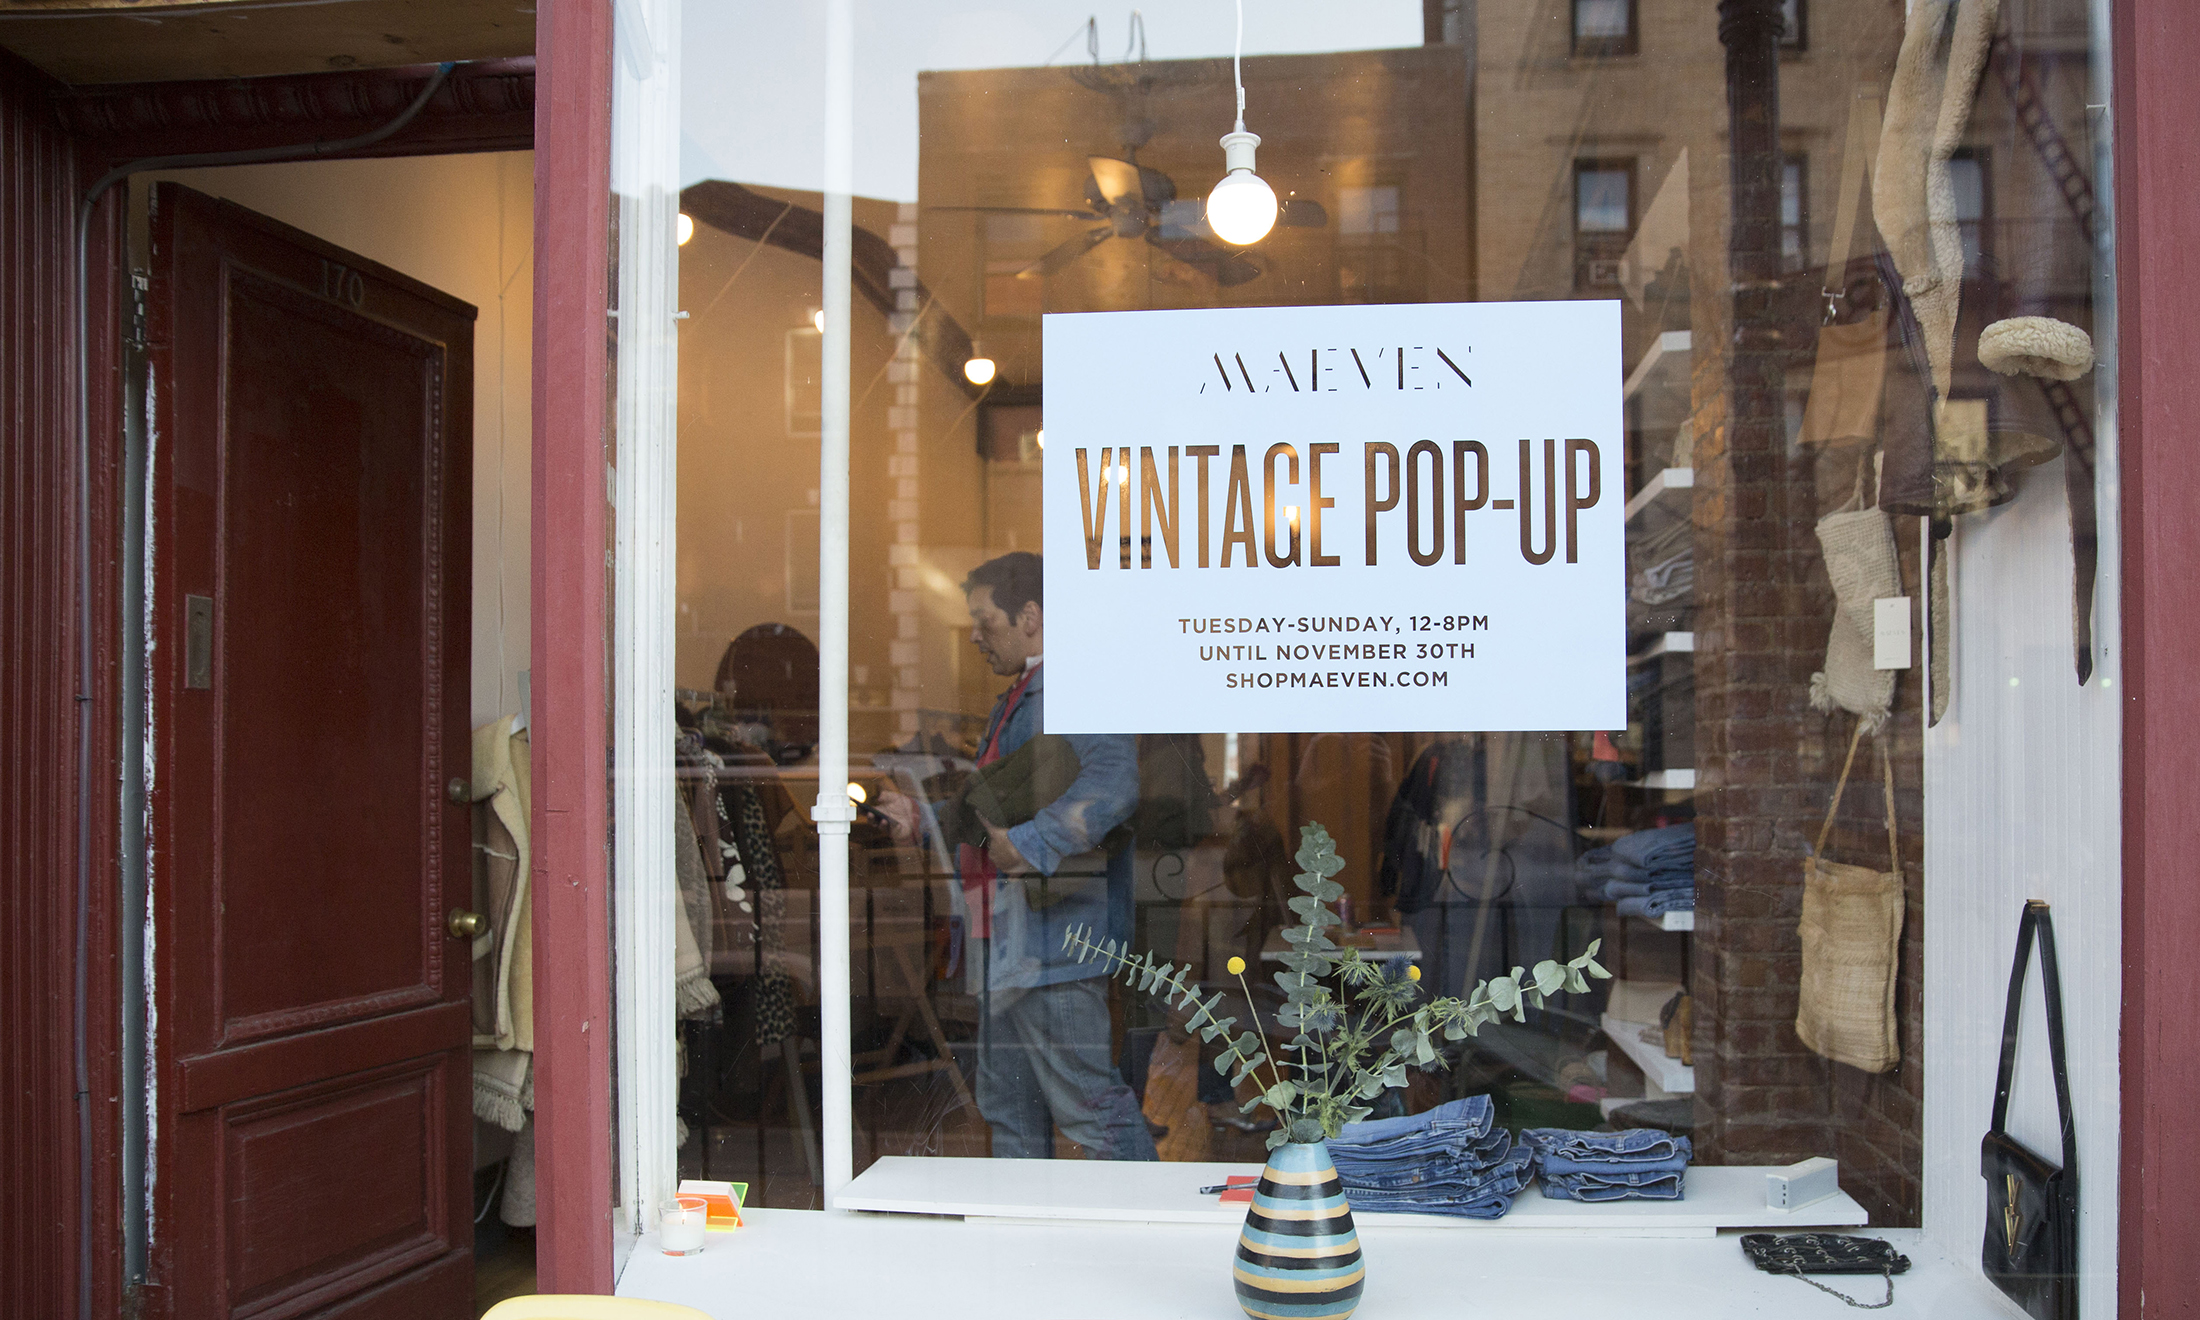 A Storefront Of The Maeven Vintage Pop Up Shop In New York City